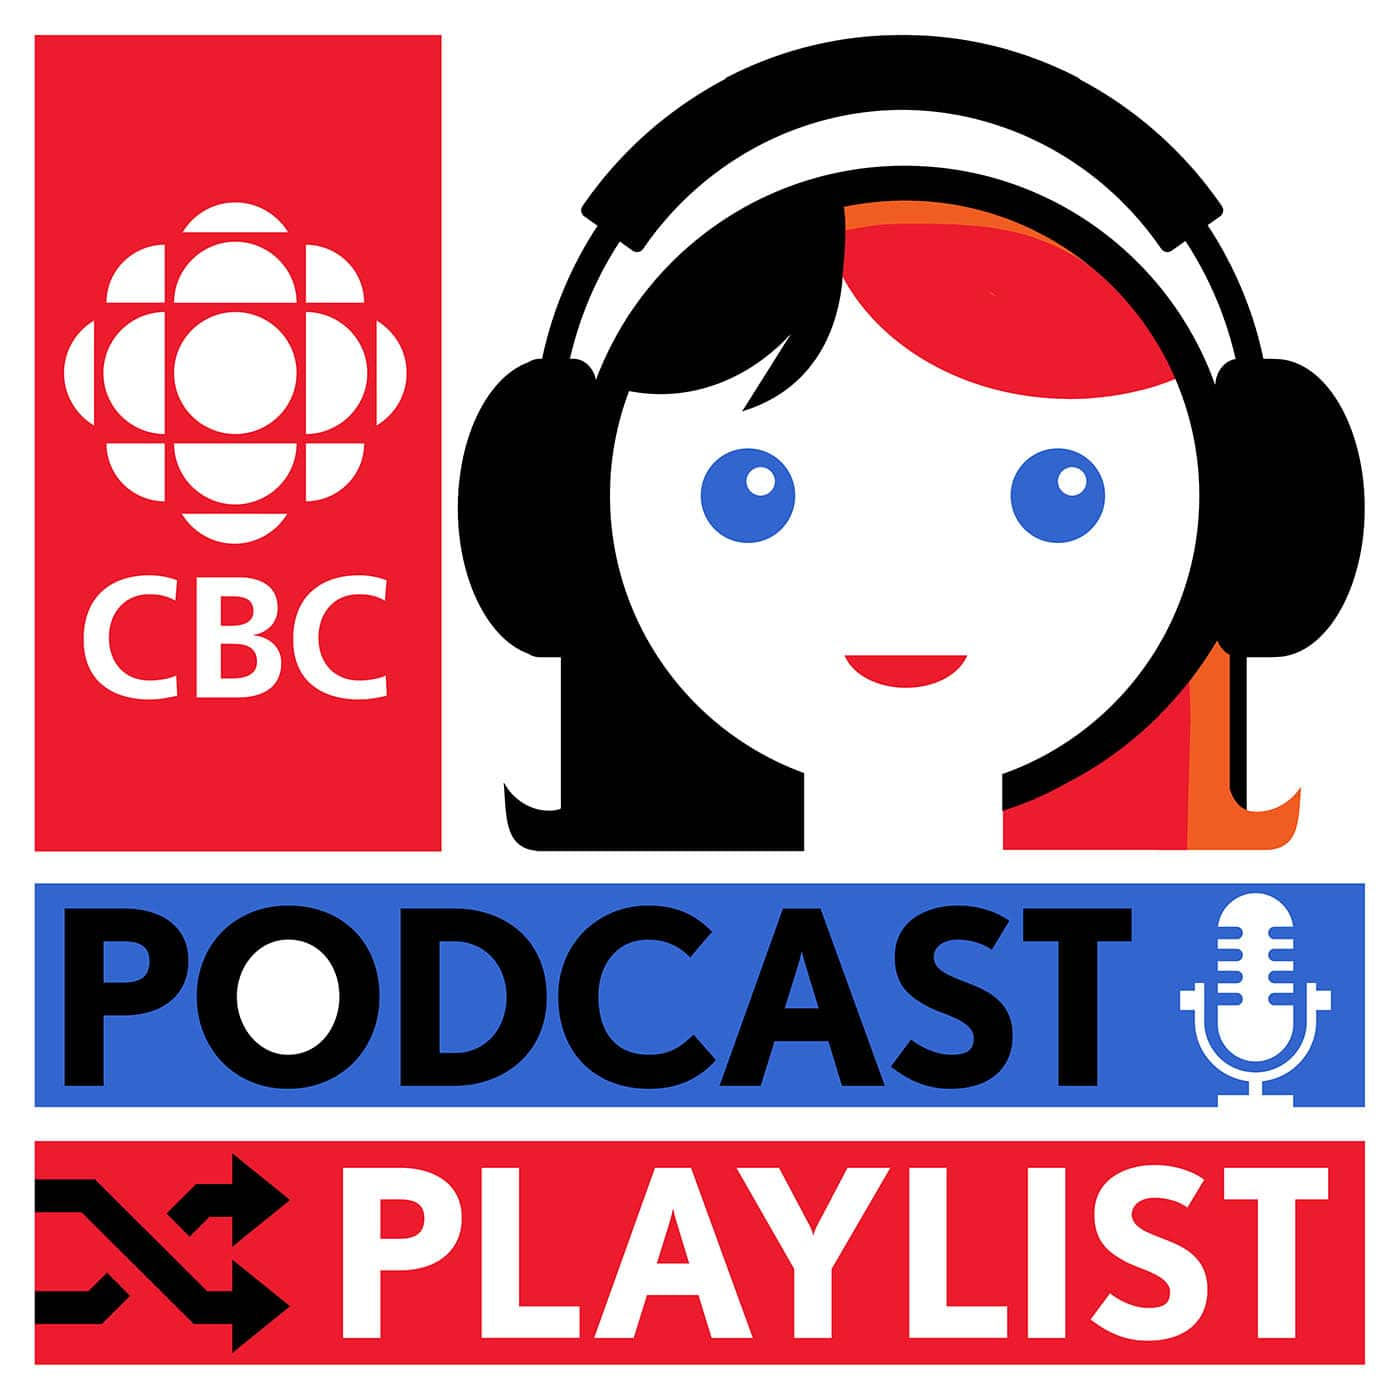 Podcast Playlist from CBC Radio